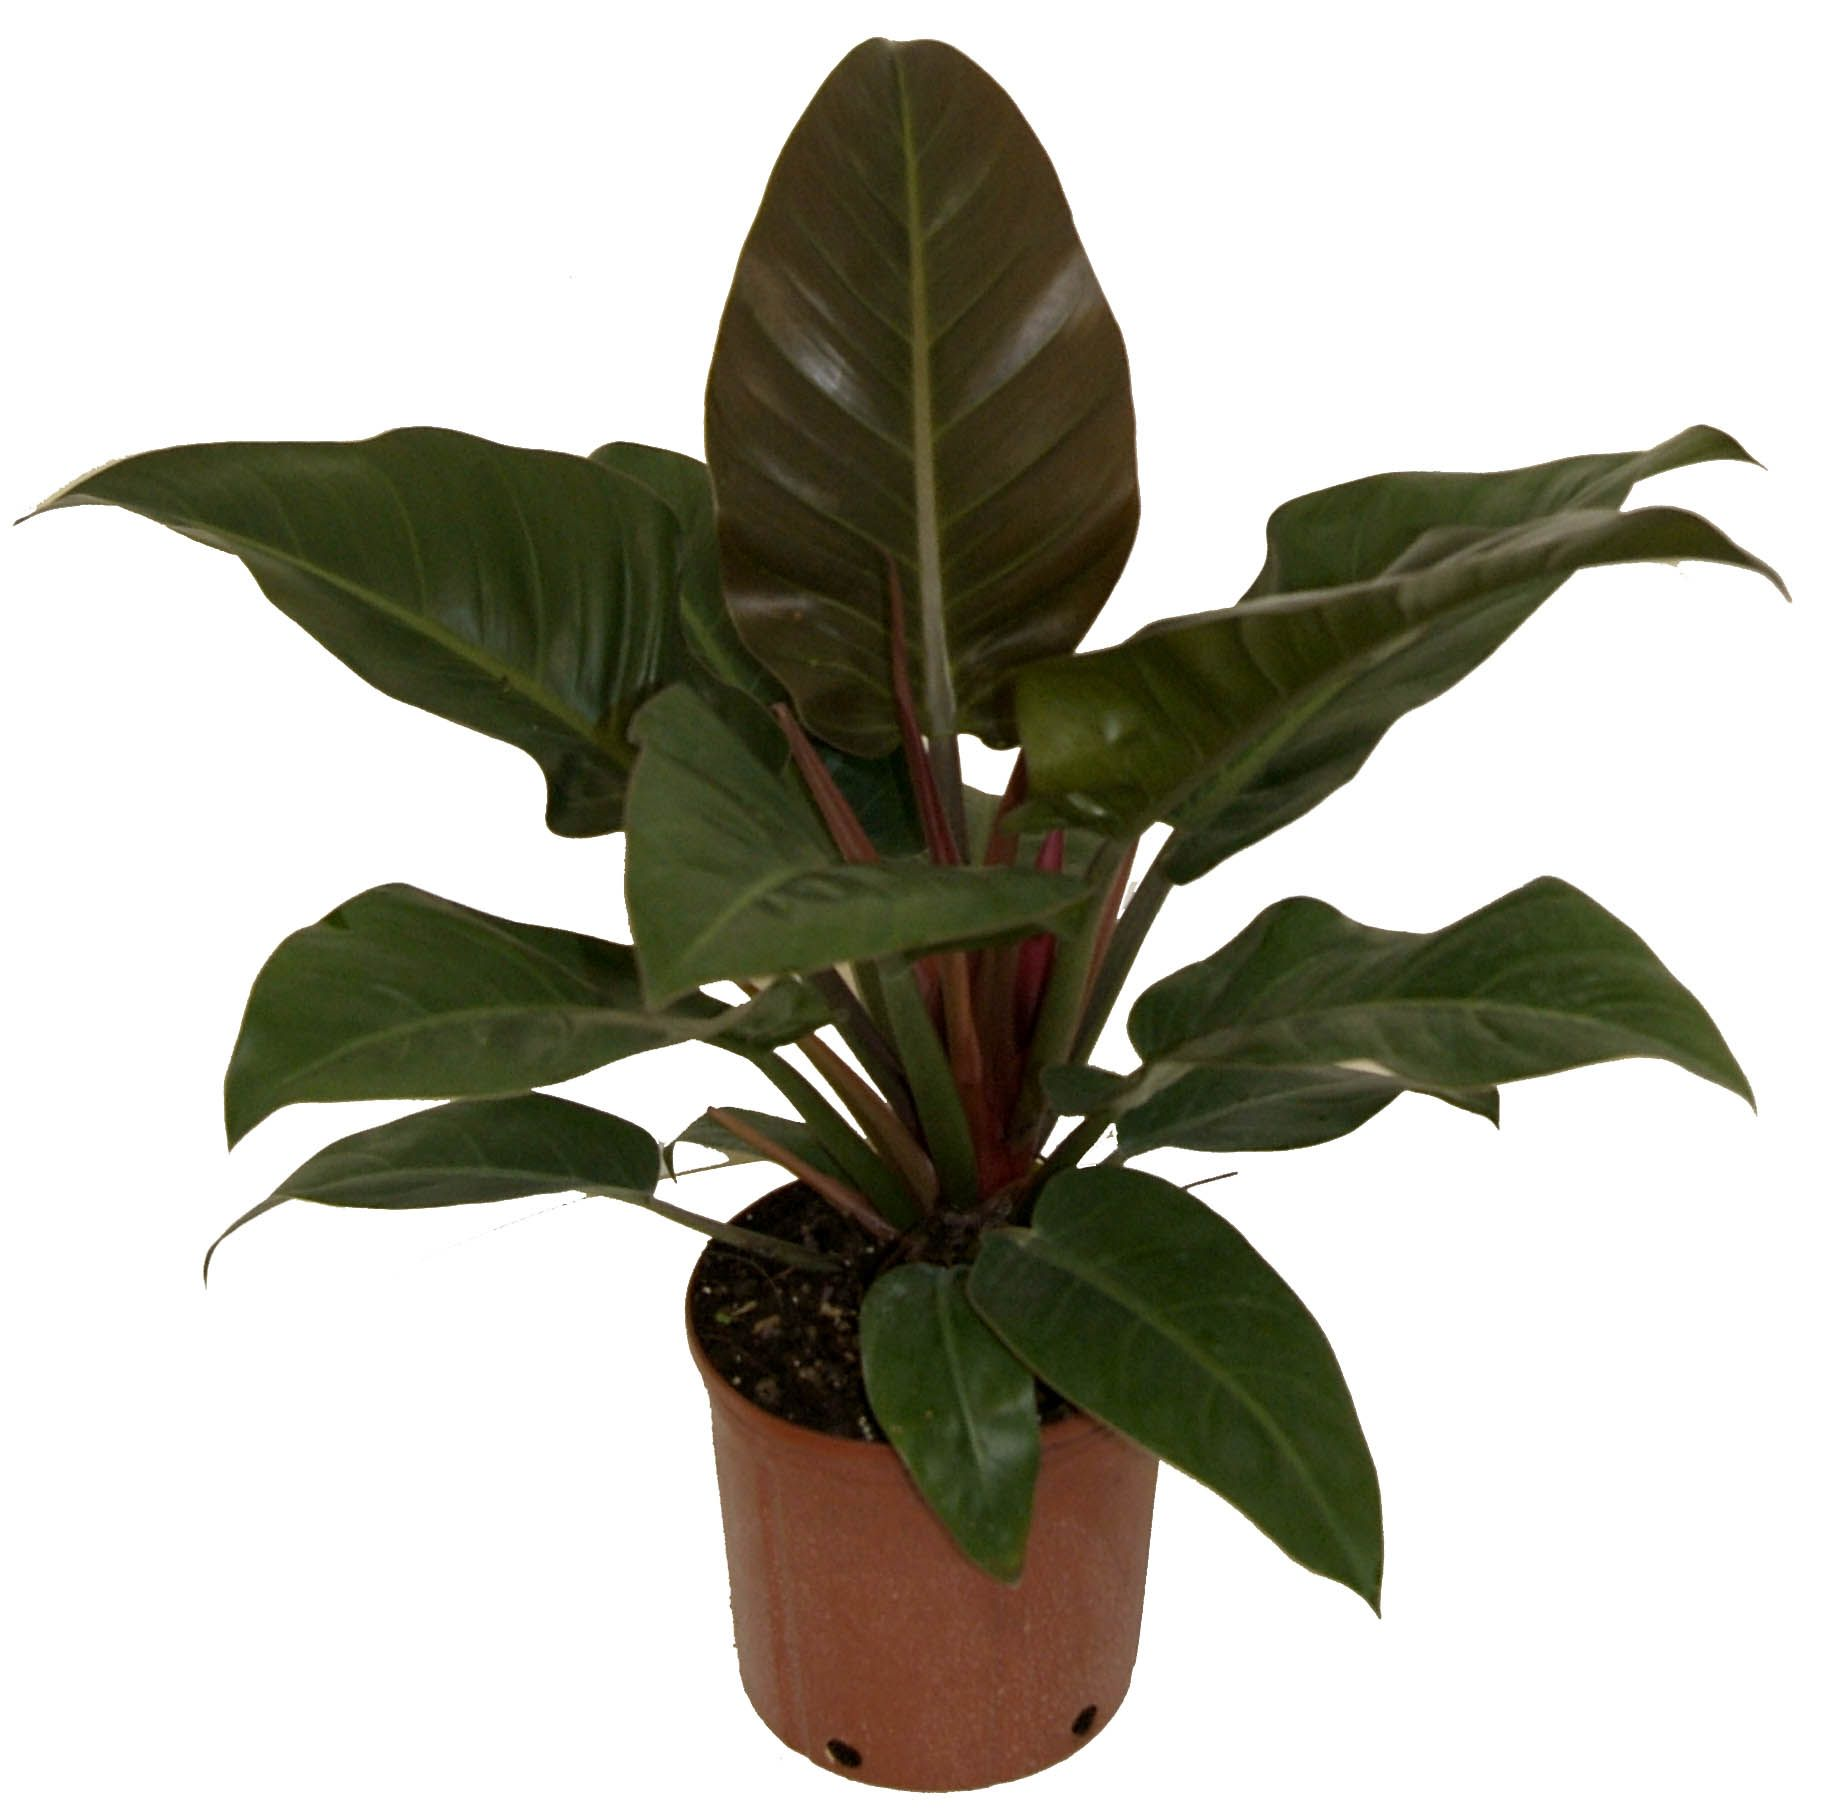 Philodendron Scandens Oxycardium Heartleaf Philodendron